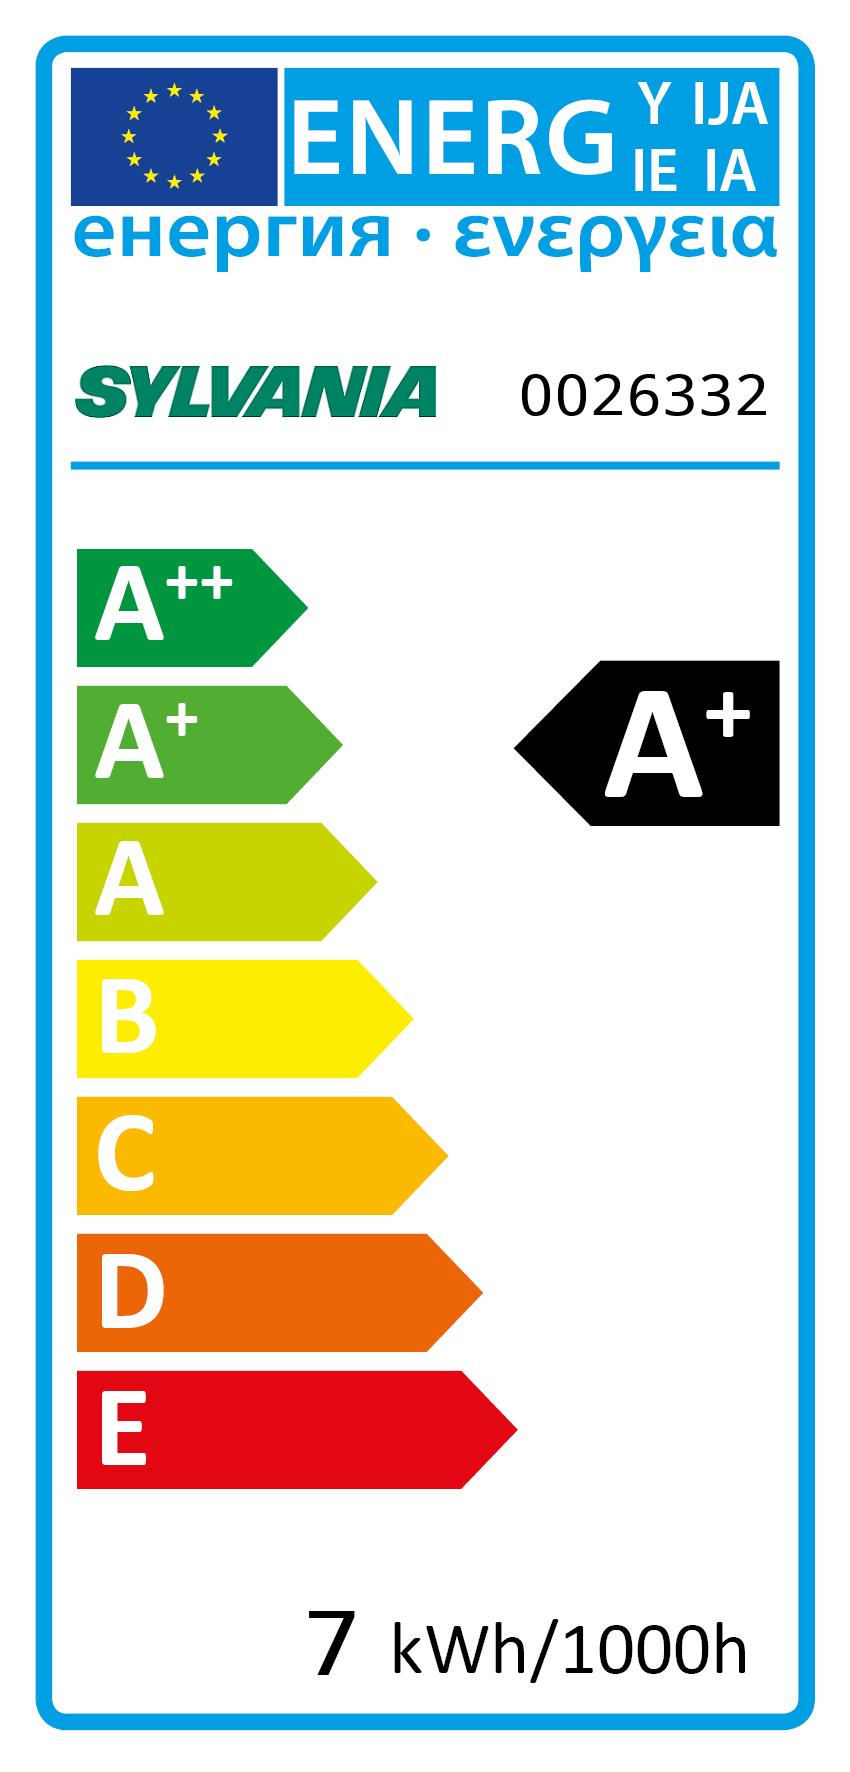 Energy Label for 0026332